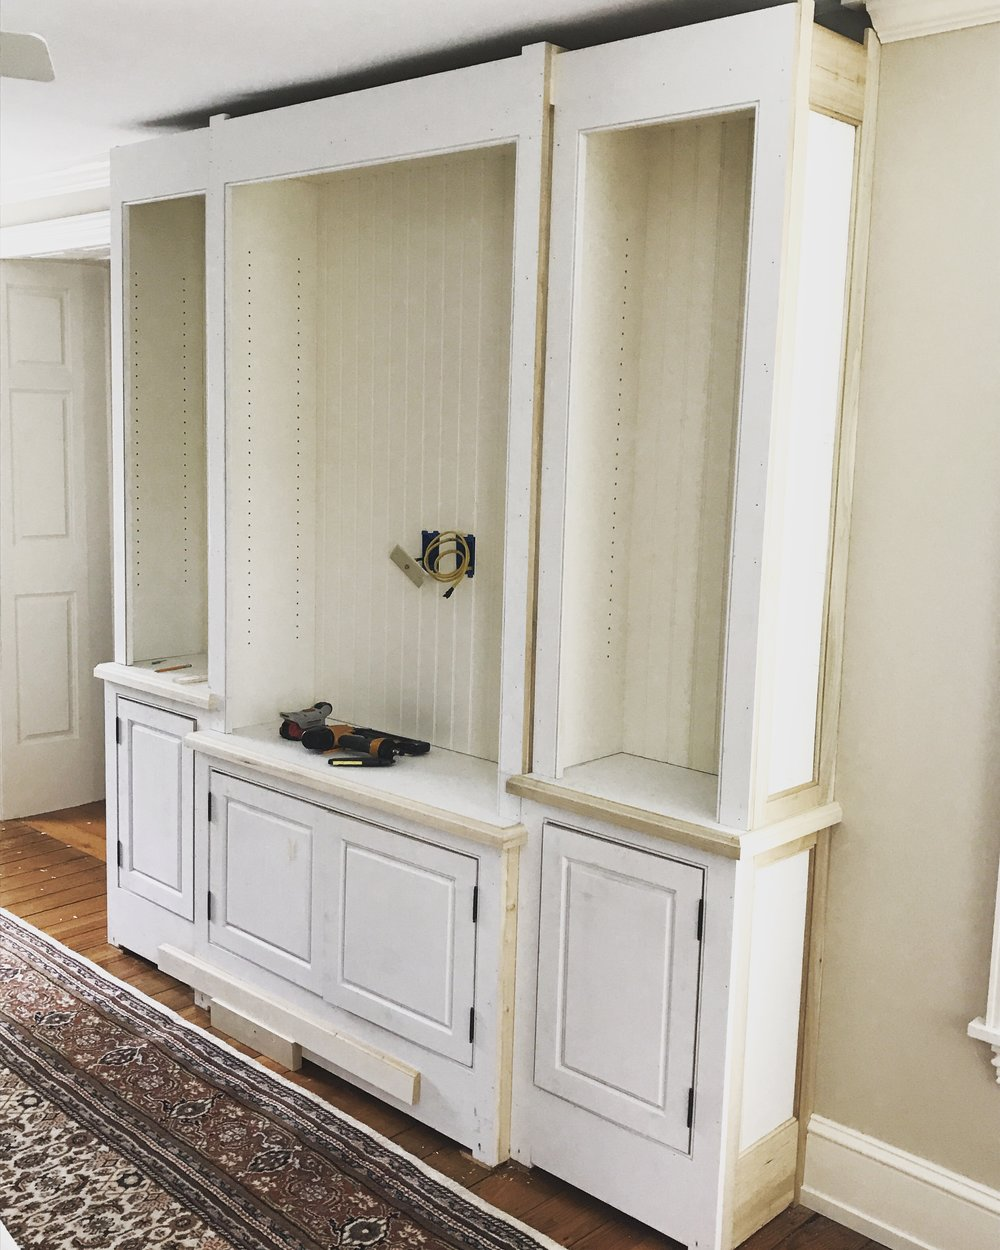 After the upper cases were set, doors were hung, and the end panels were installed my part of this job was complete. The clients would handle the installation of the crown molding and baseboards, as well as installing the pulls and painting.